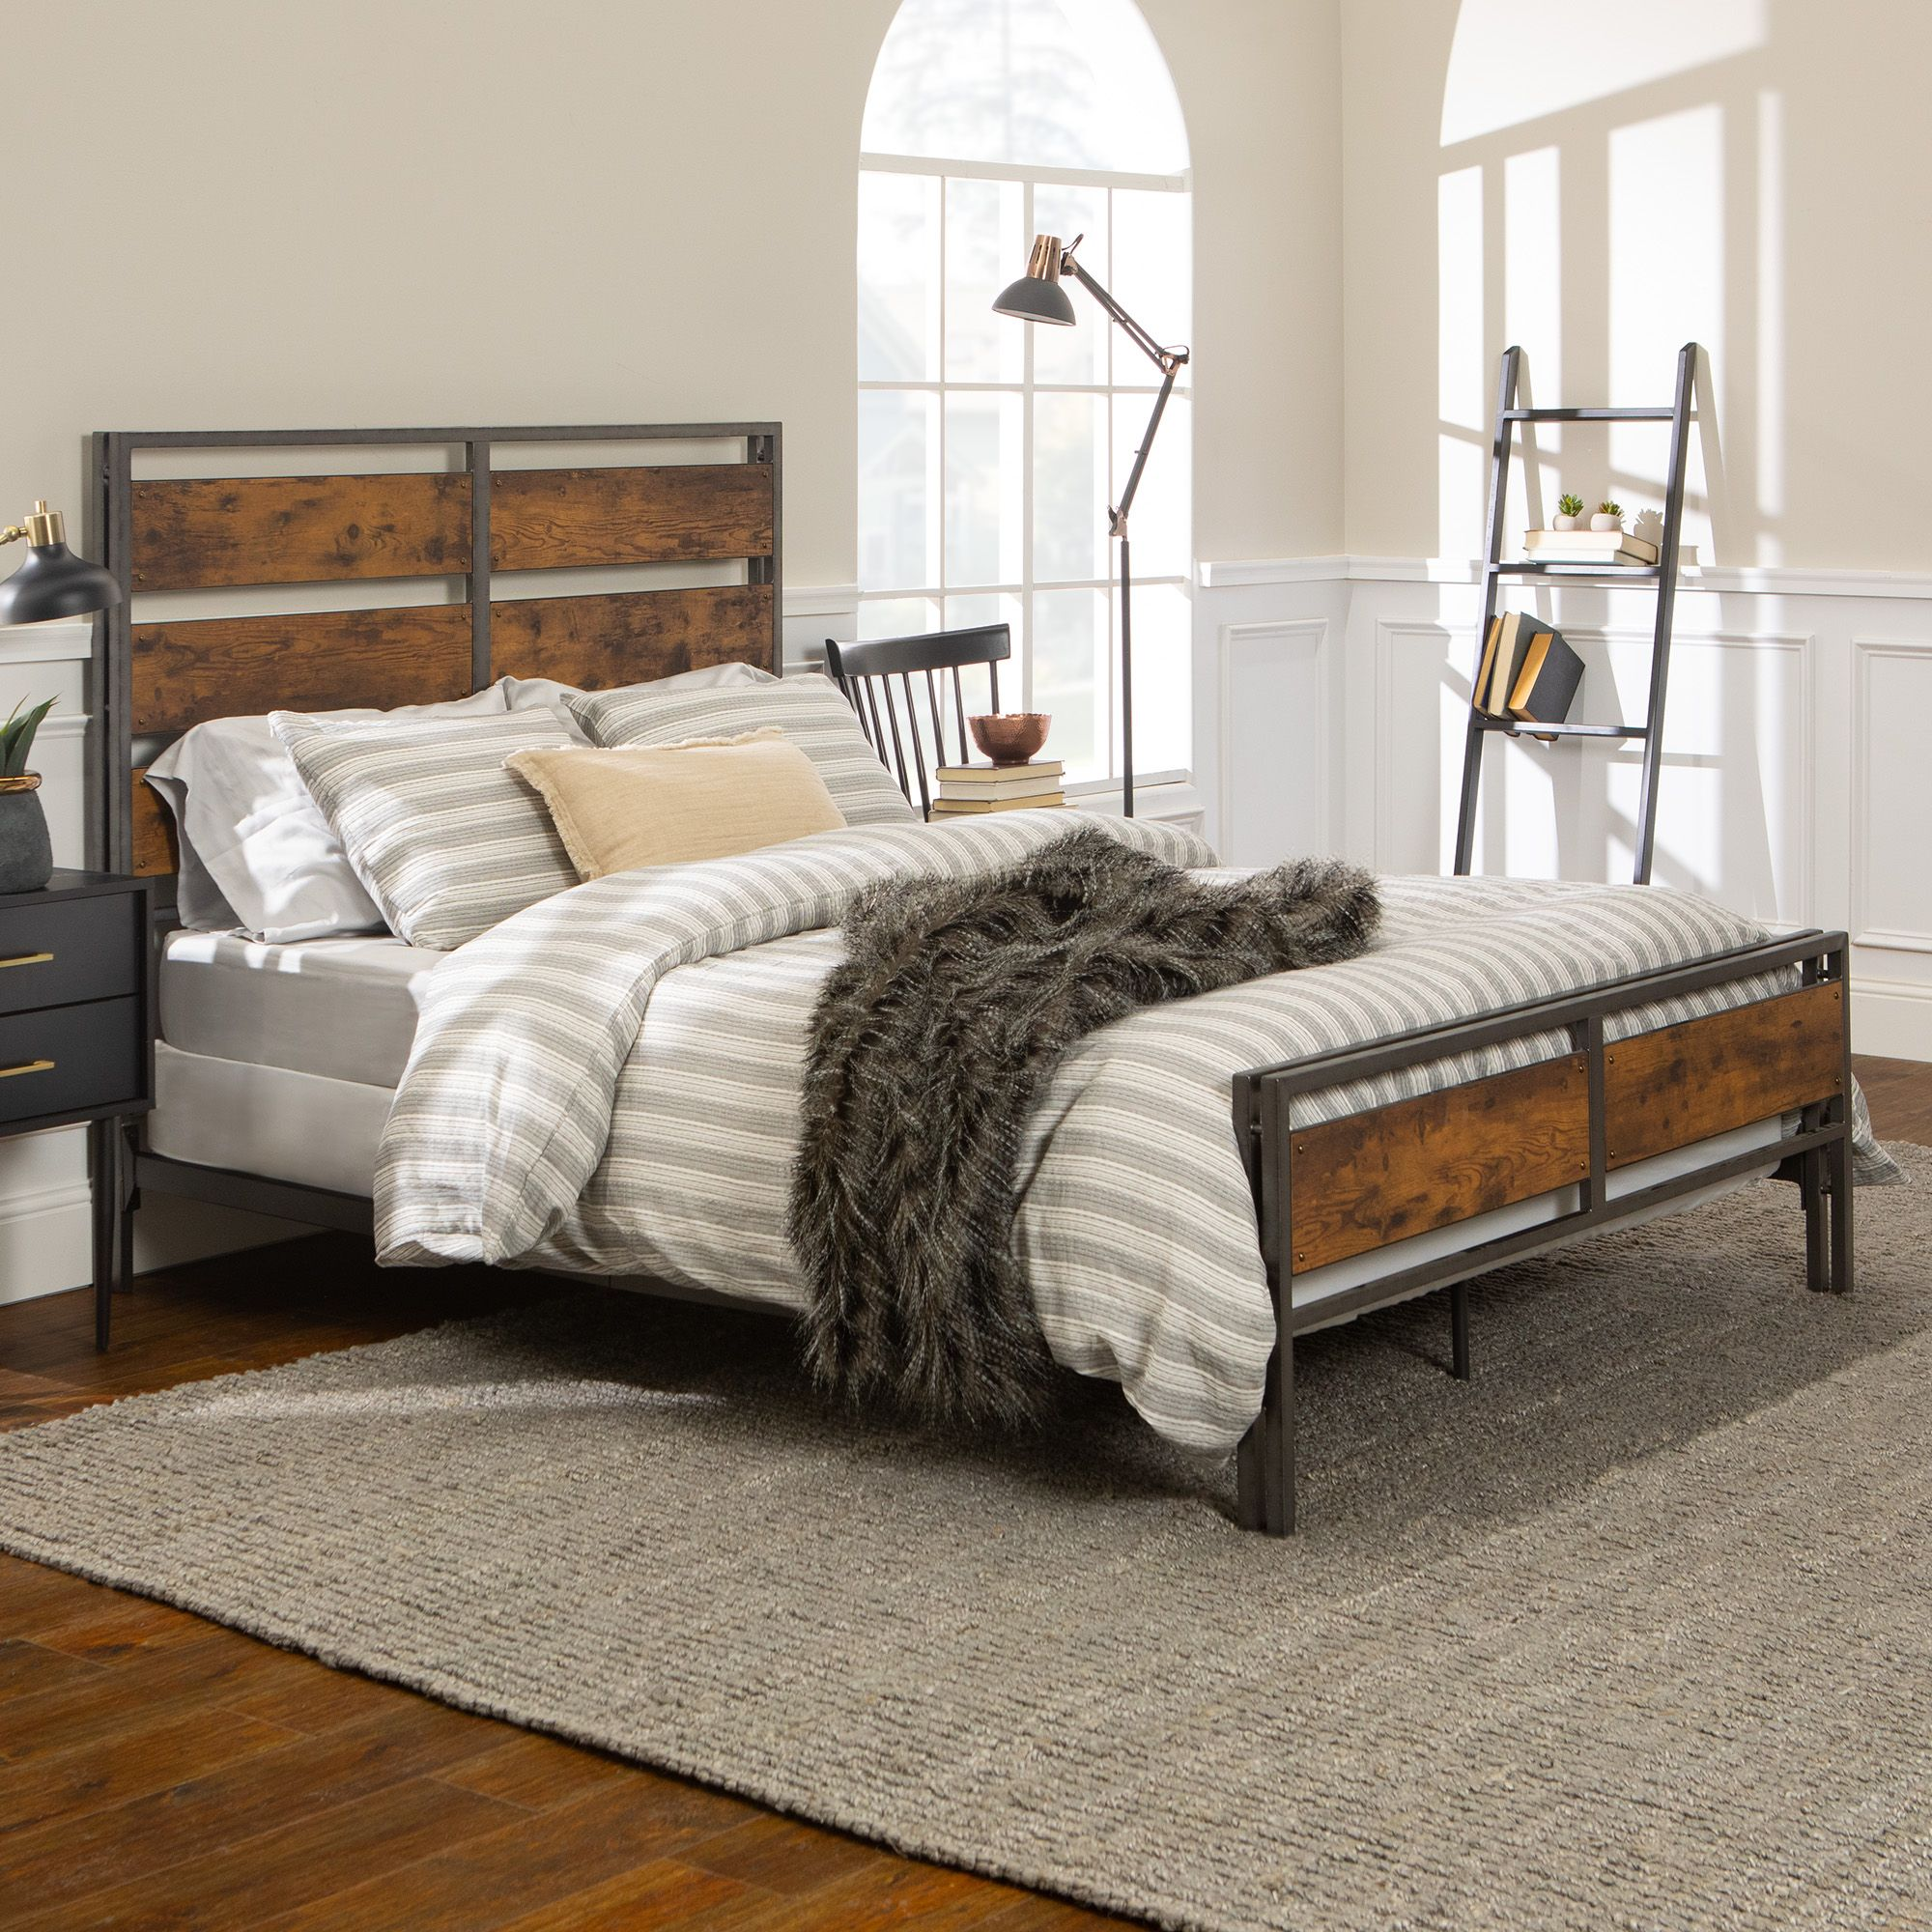 Rustic Farmhouse Queen Size Bed Frame Brown Bjs Wholesale Club